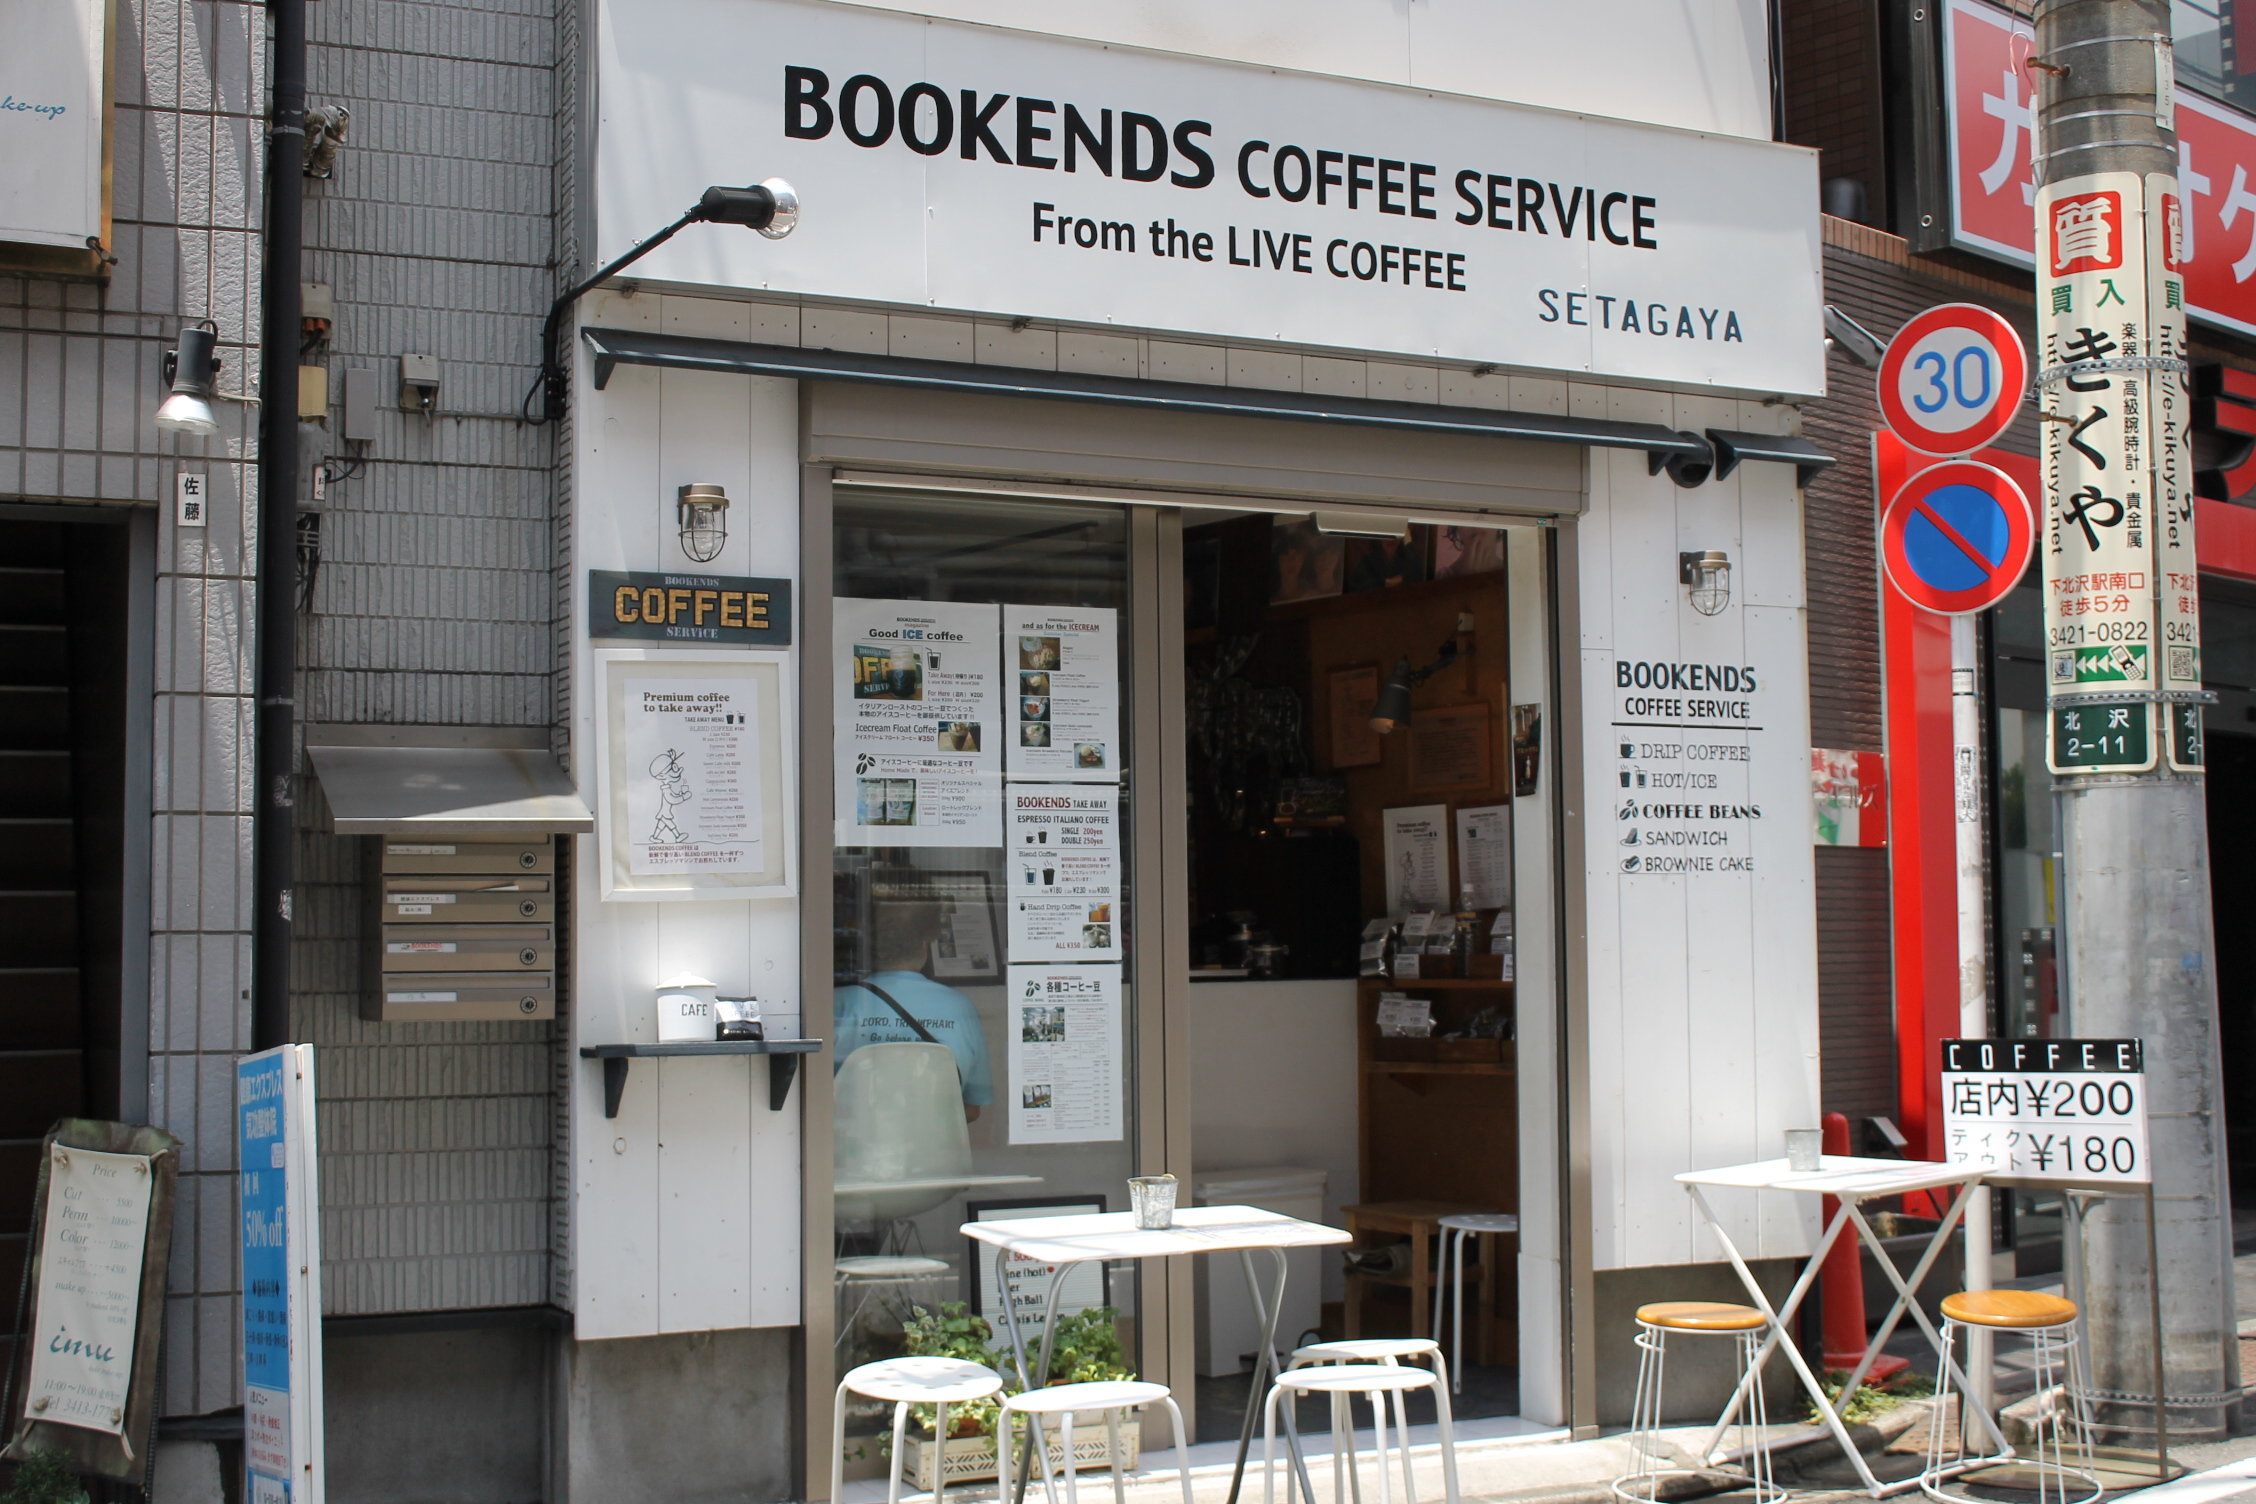 BOOKENDS COFFEE SERVICE